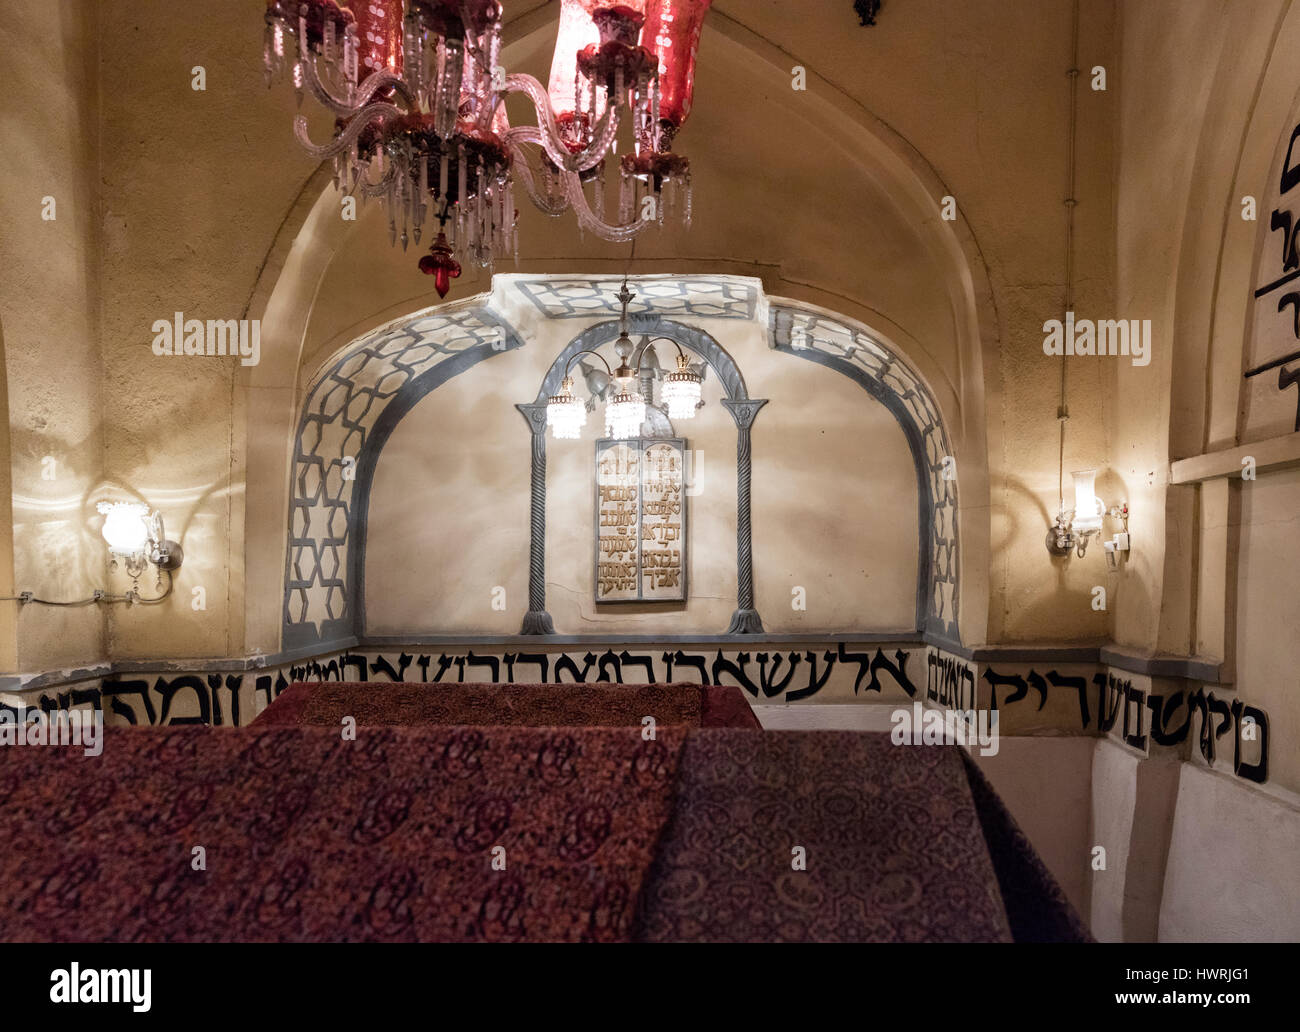 Interior of tomb of Esther and Mordechai. Some authorities doubt these Jewish figures are actually buried here - Stock Image